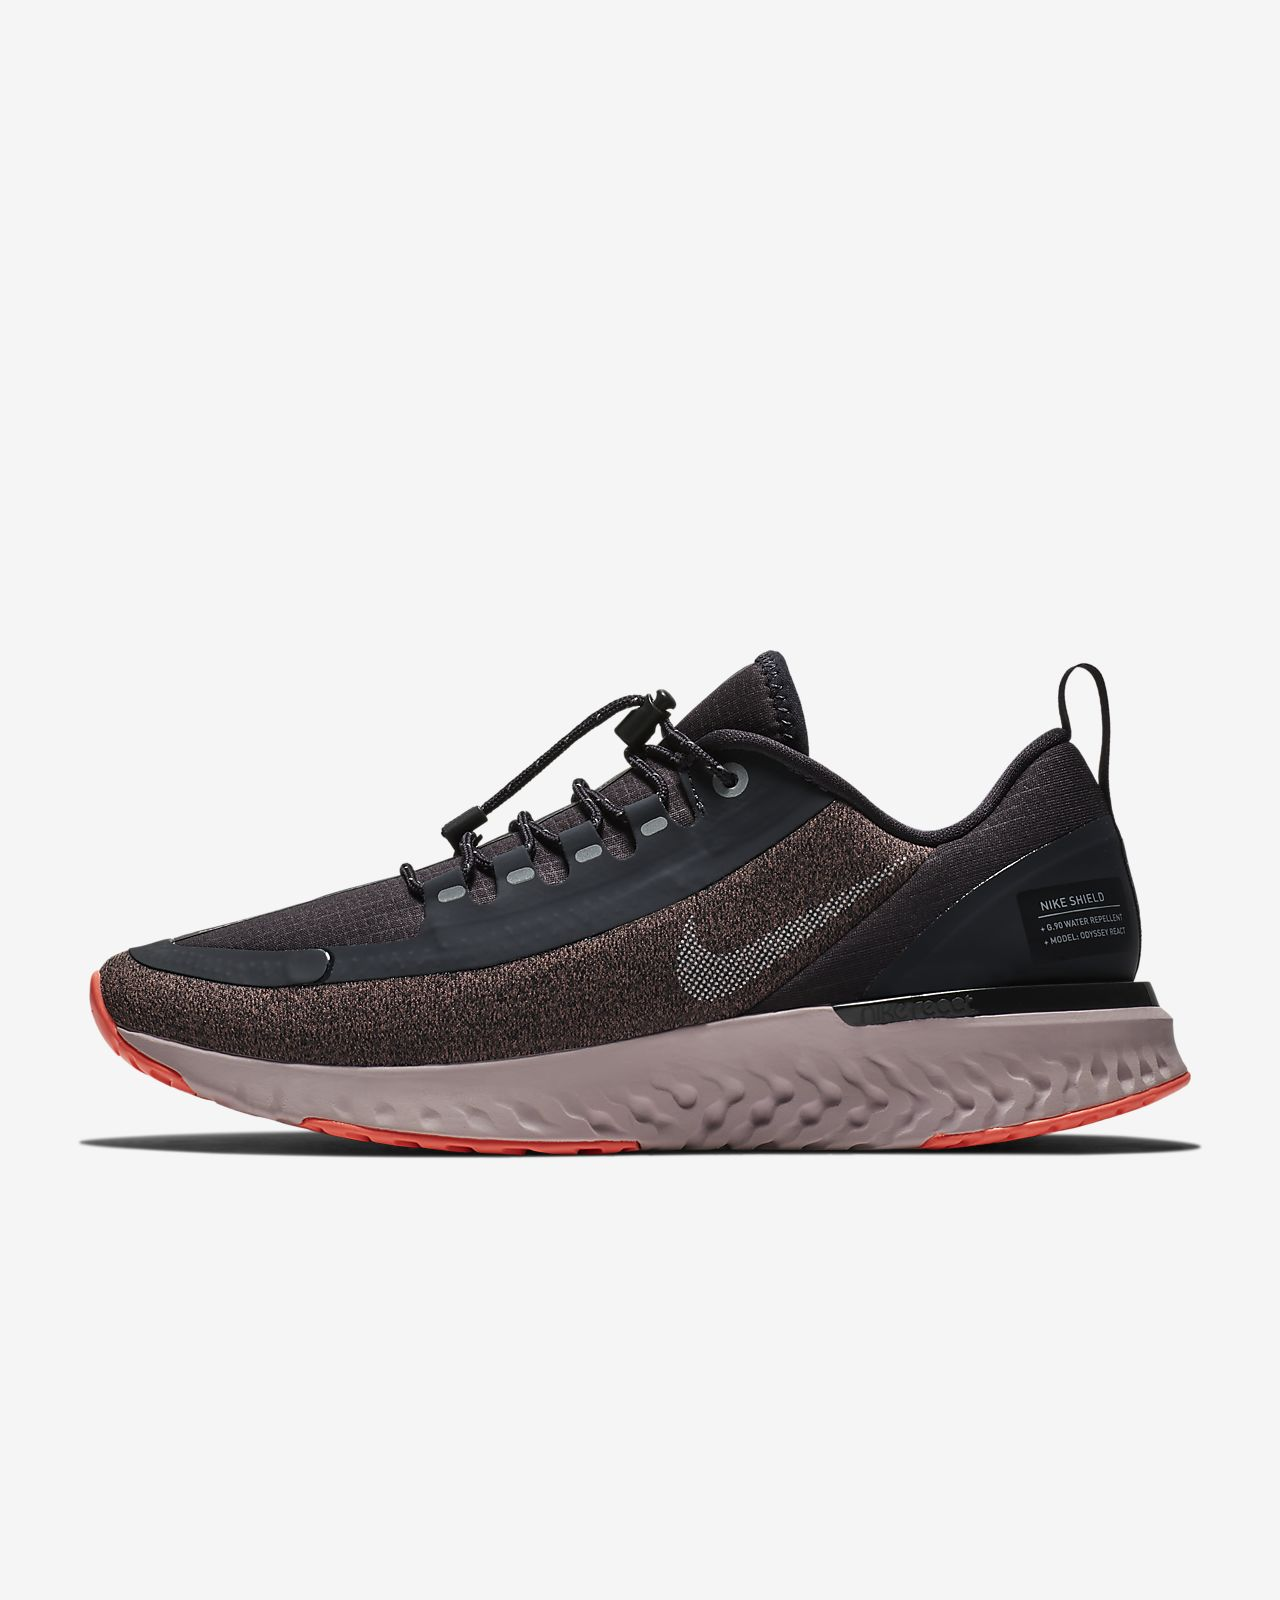 8989118aebf Nike Odyssey React Shield Water-Repellent Women s Running Shoe. Nike ...